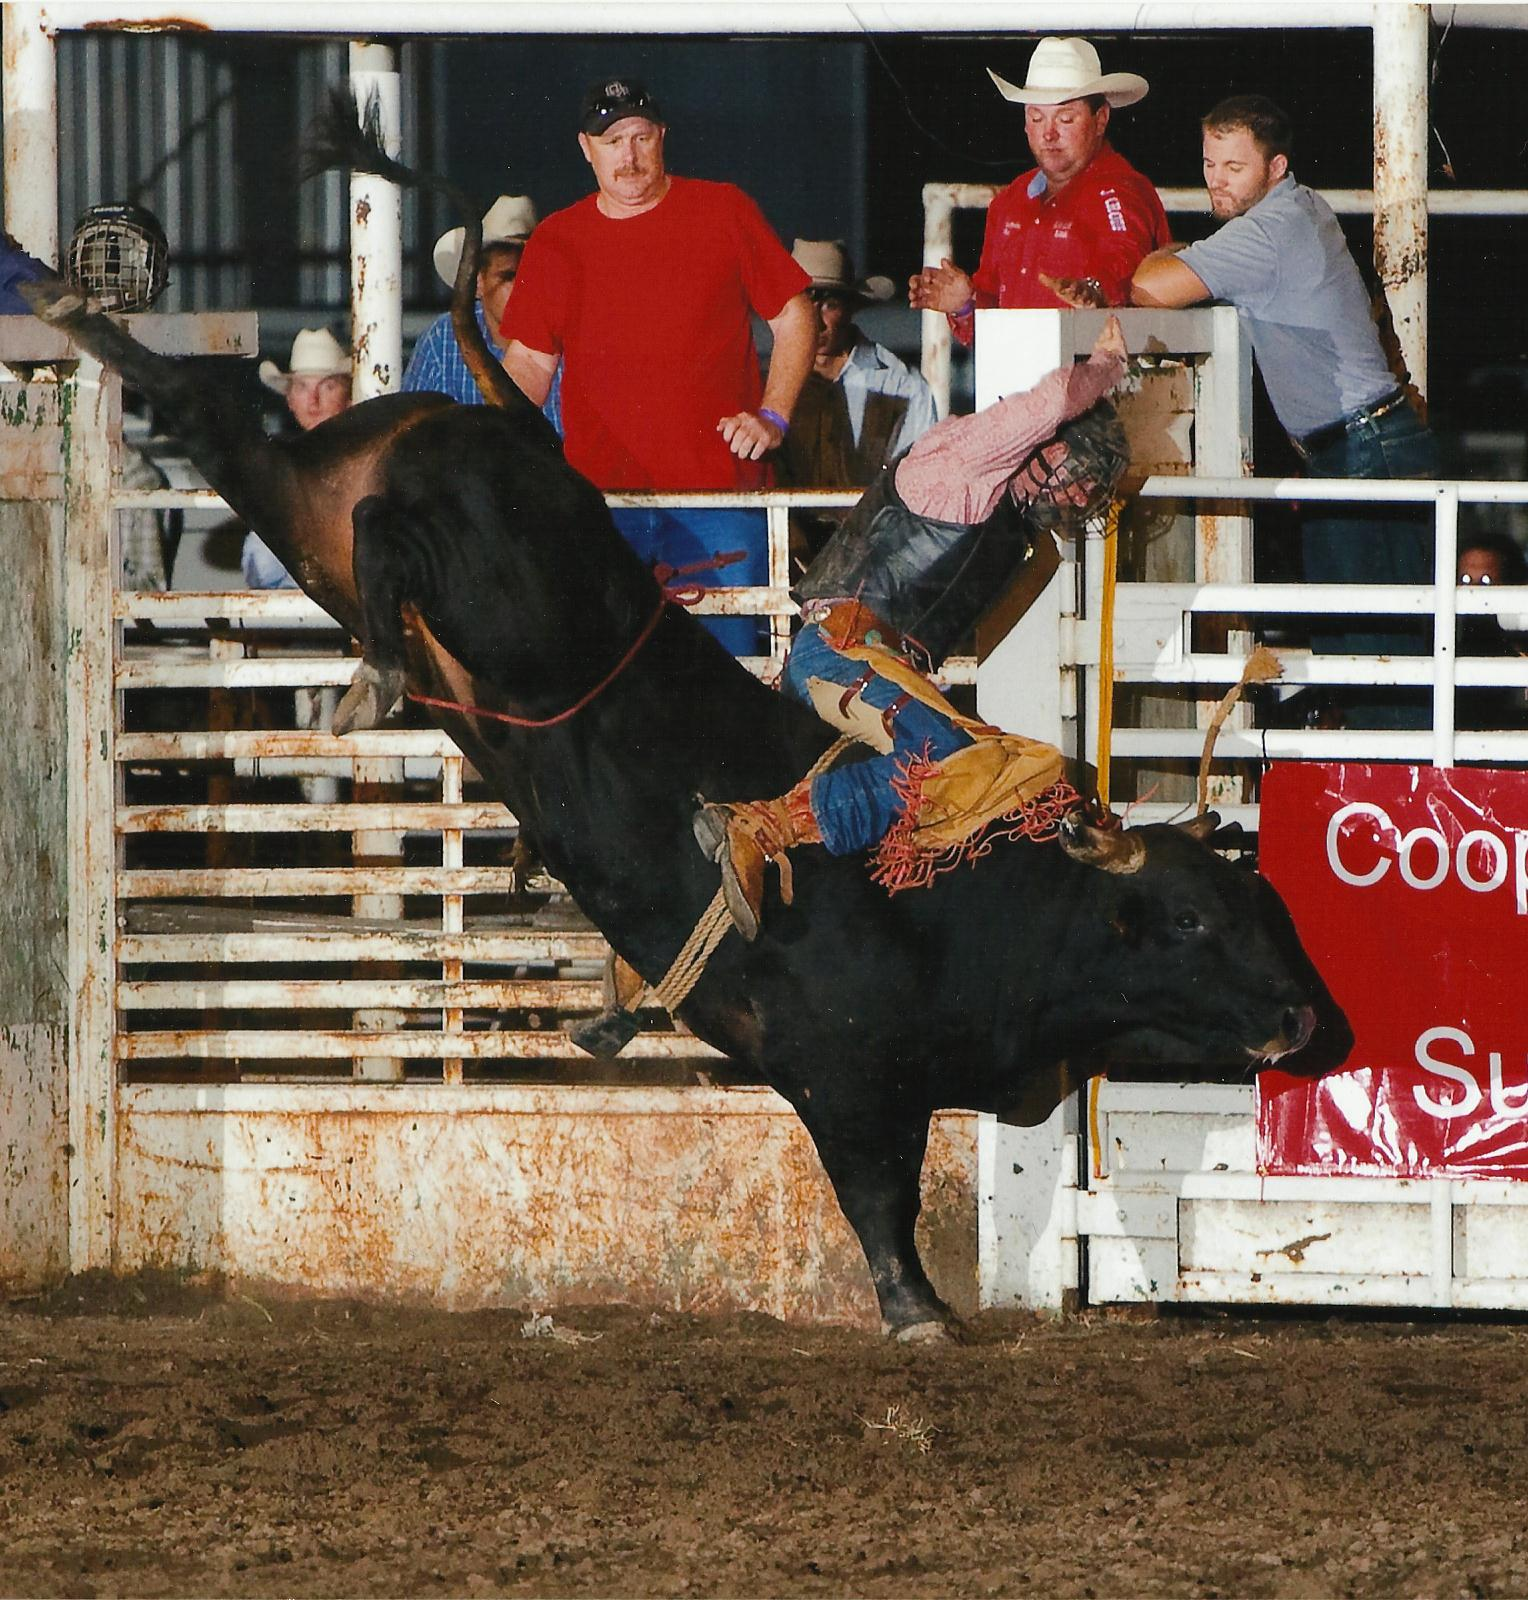 Overstreet, a bucking bull owned by Flint Hills Genetics, Strong City, will be featured in the Flint Hills Bull Blowout Saturday evening, Sept. 10, at Strong City. He has been un-ridden in five outs at Professional Bull Riders sanctioned competitions.